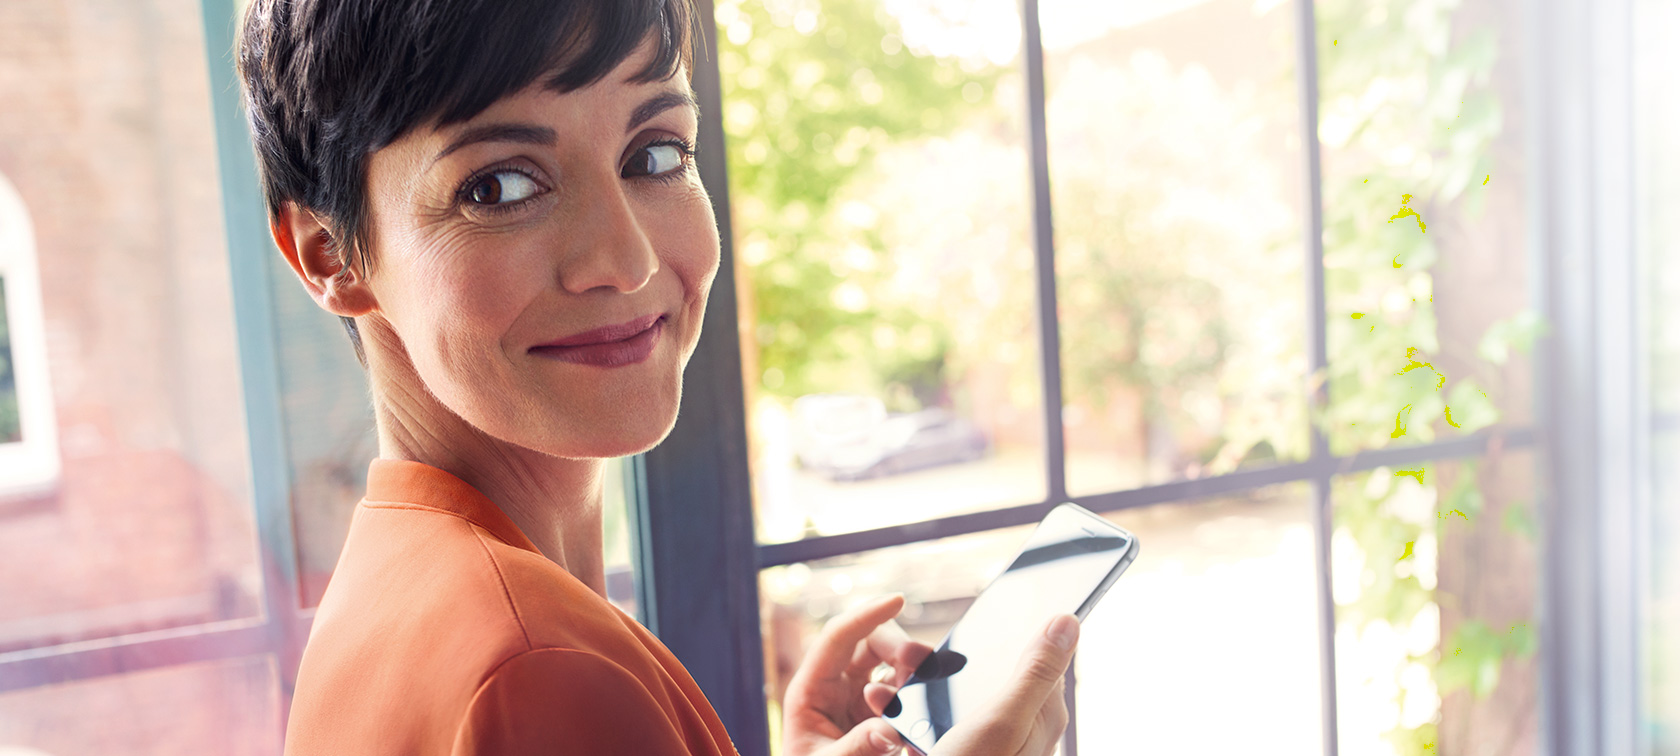 Dark-haired woman in orange jacket in front of window looking at her smartphone